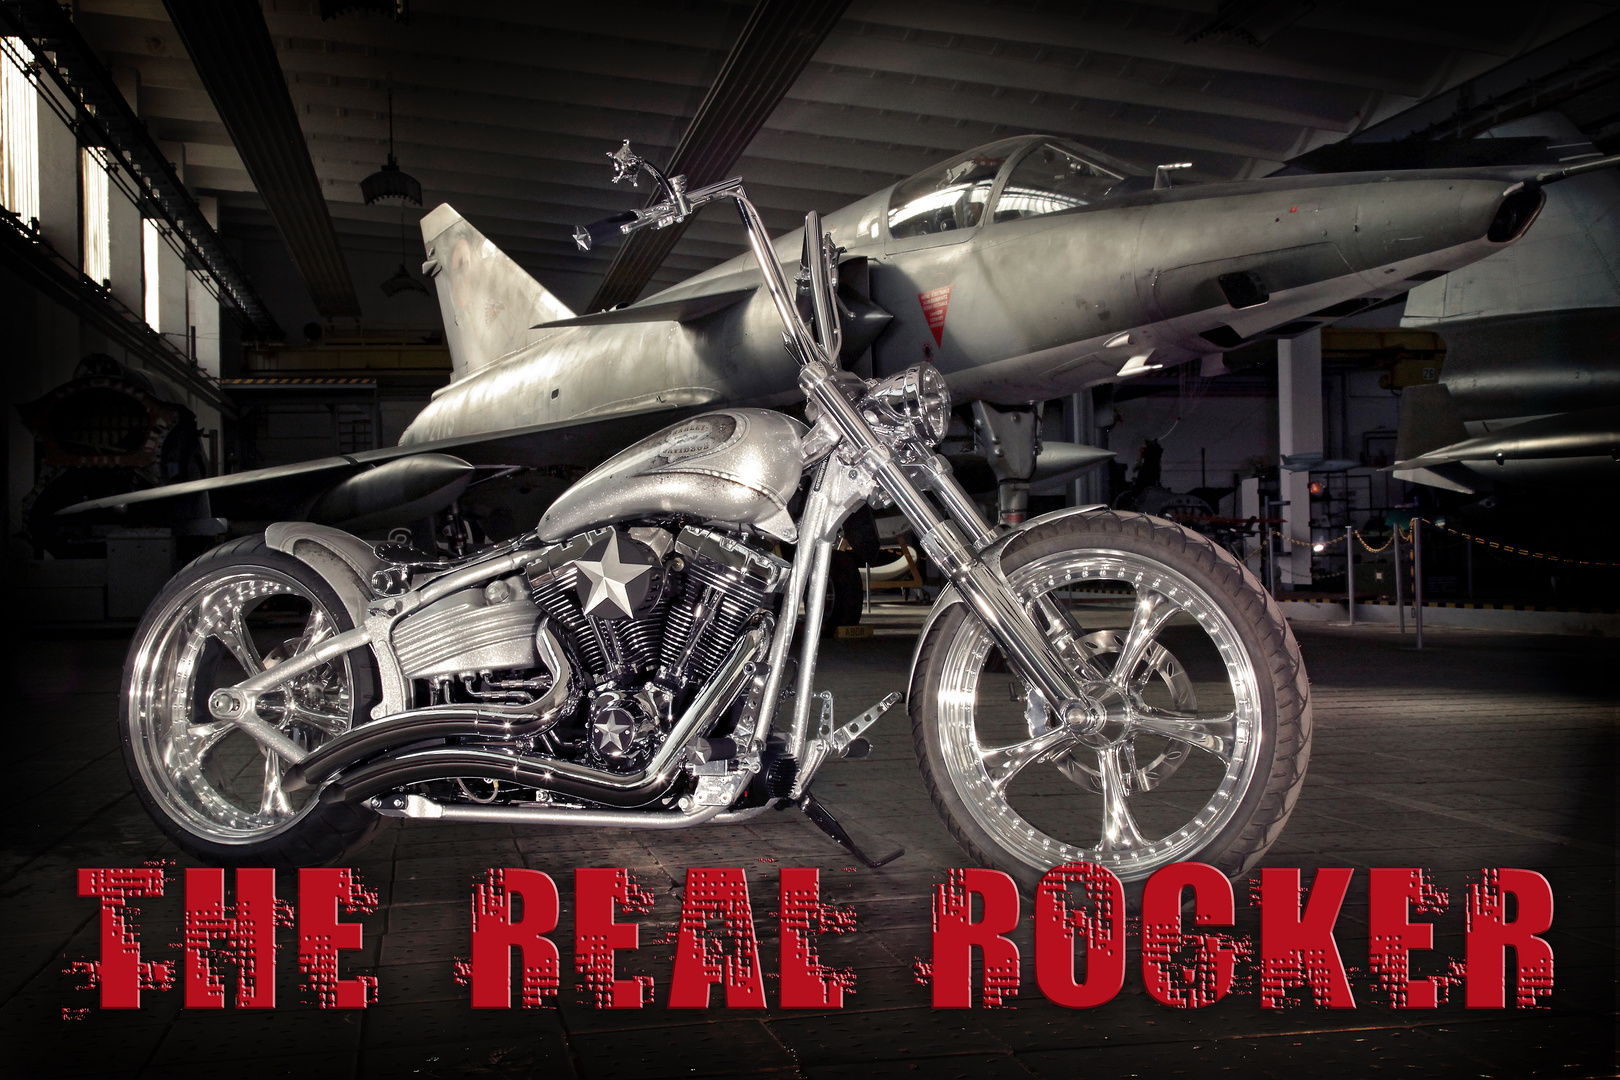 The real Rocker!!!